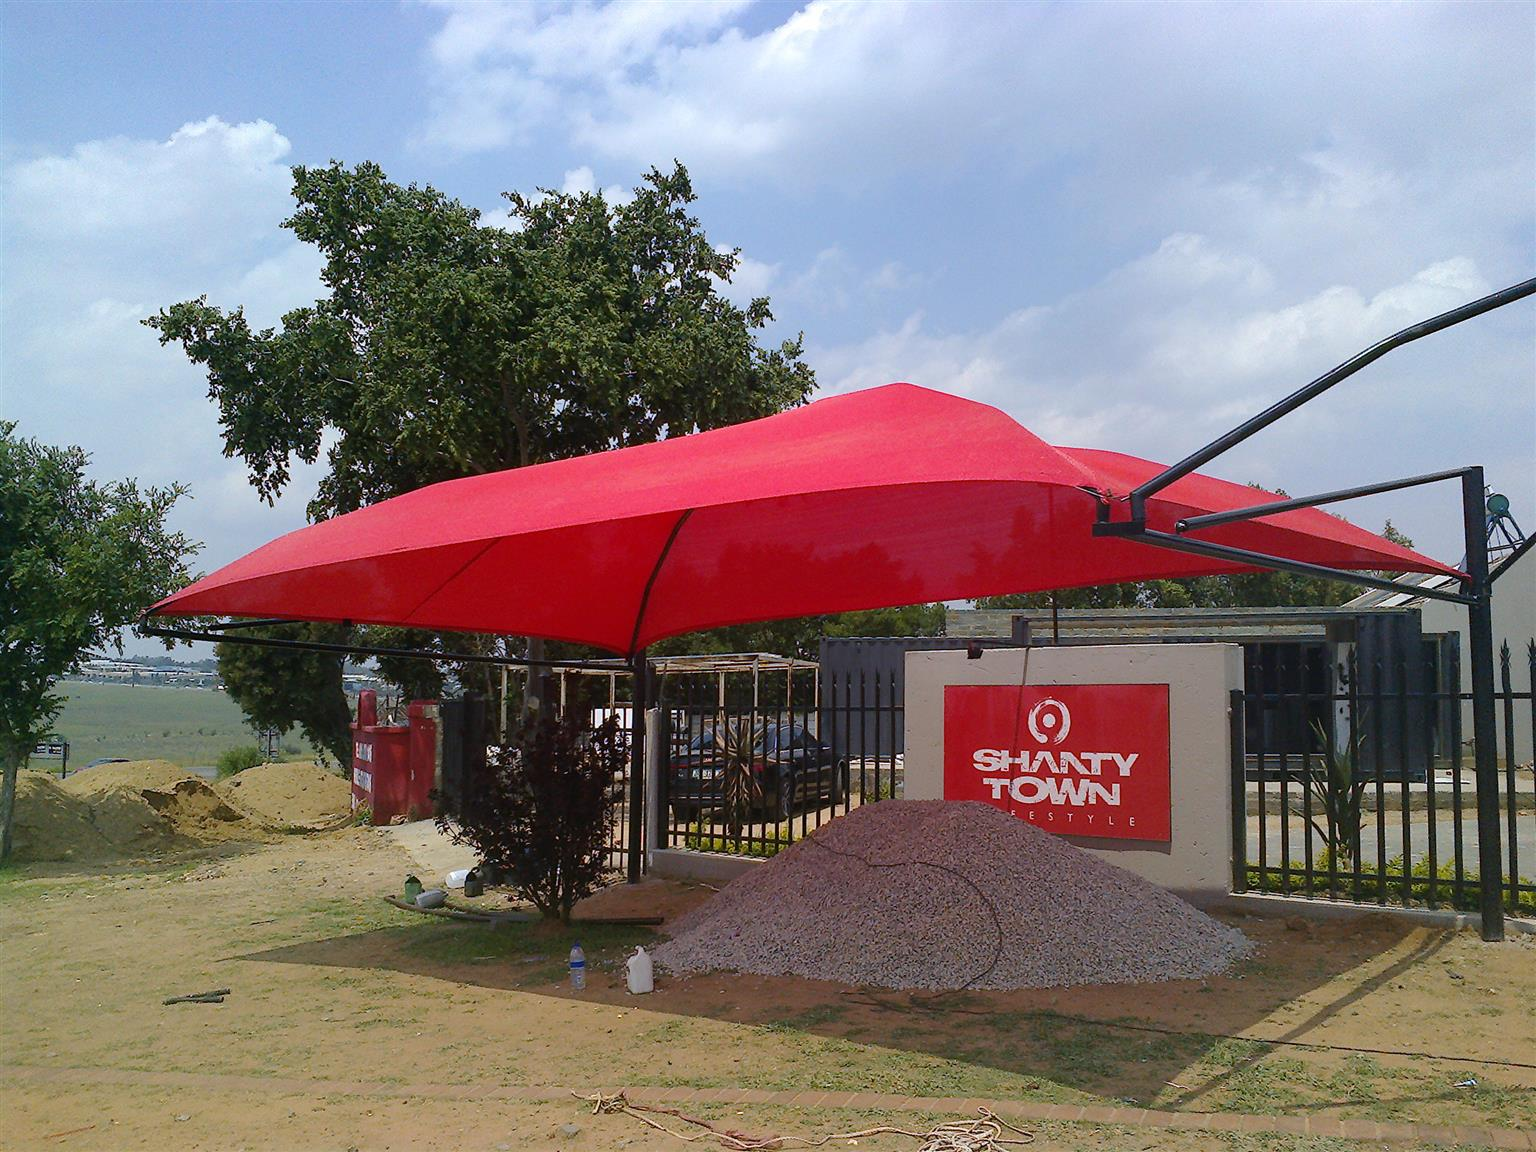 SHADEPORTS AND CARPORTS 0727083148 FROM R4000